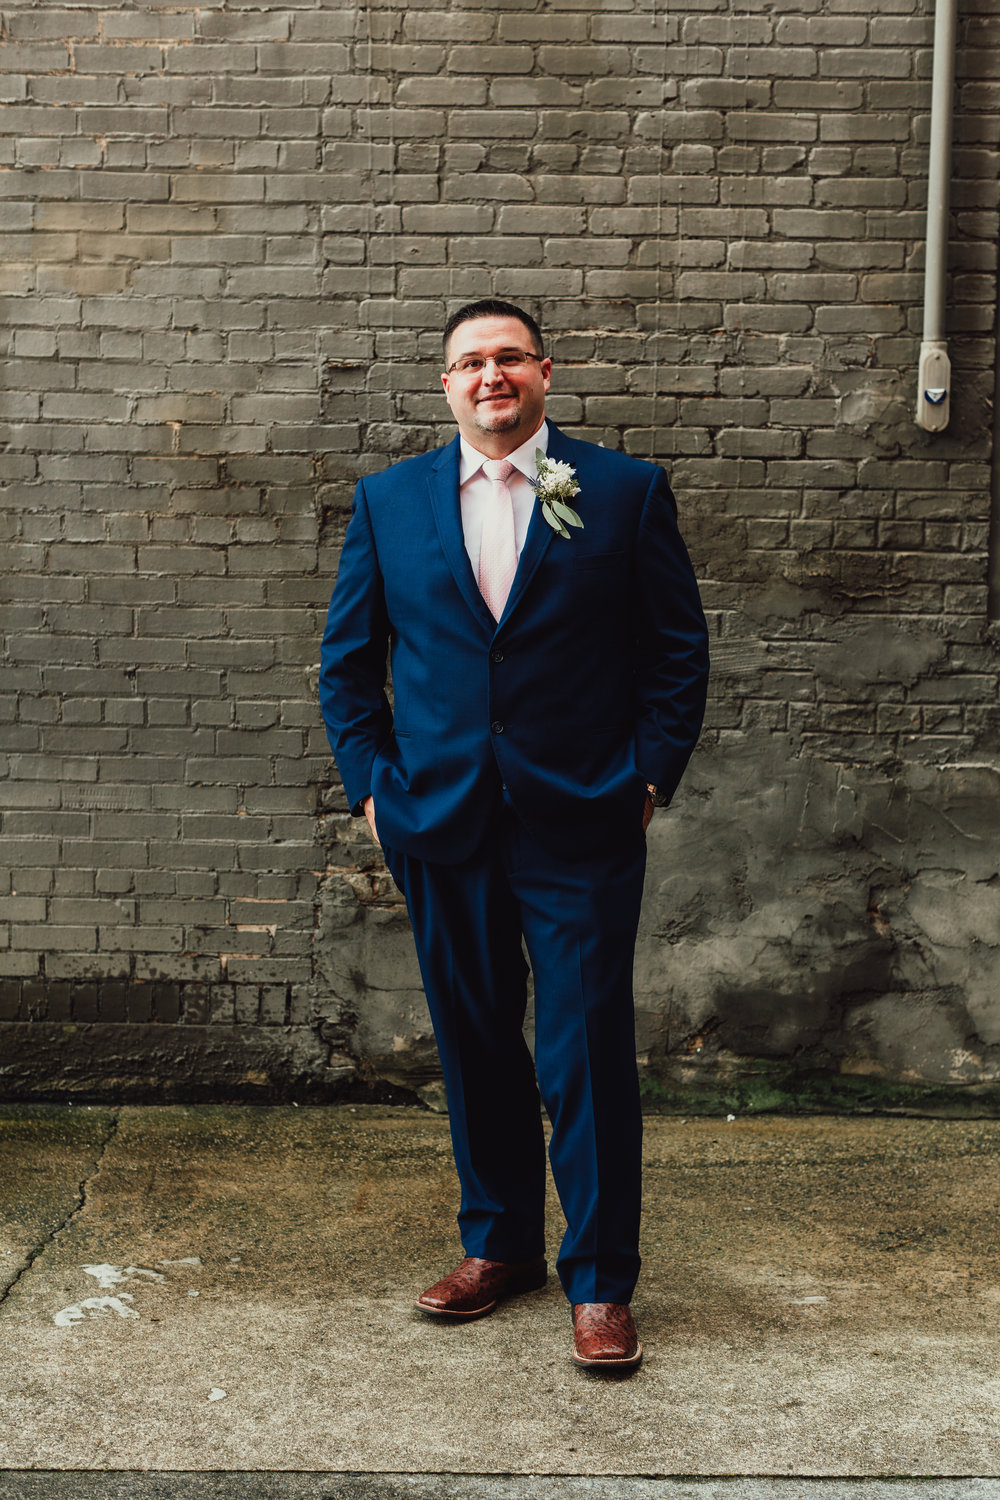 east-tn-wedding-photographer-tennessee-elopement-photographer-kingsport-tn-wedding-photographer (708 of 1001).jpg